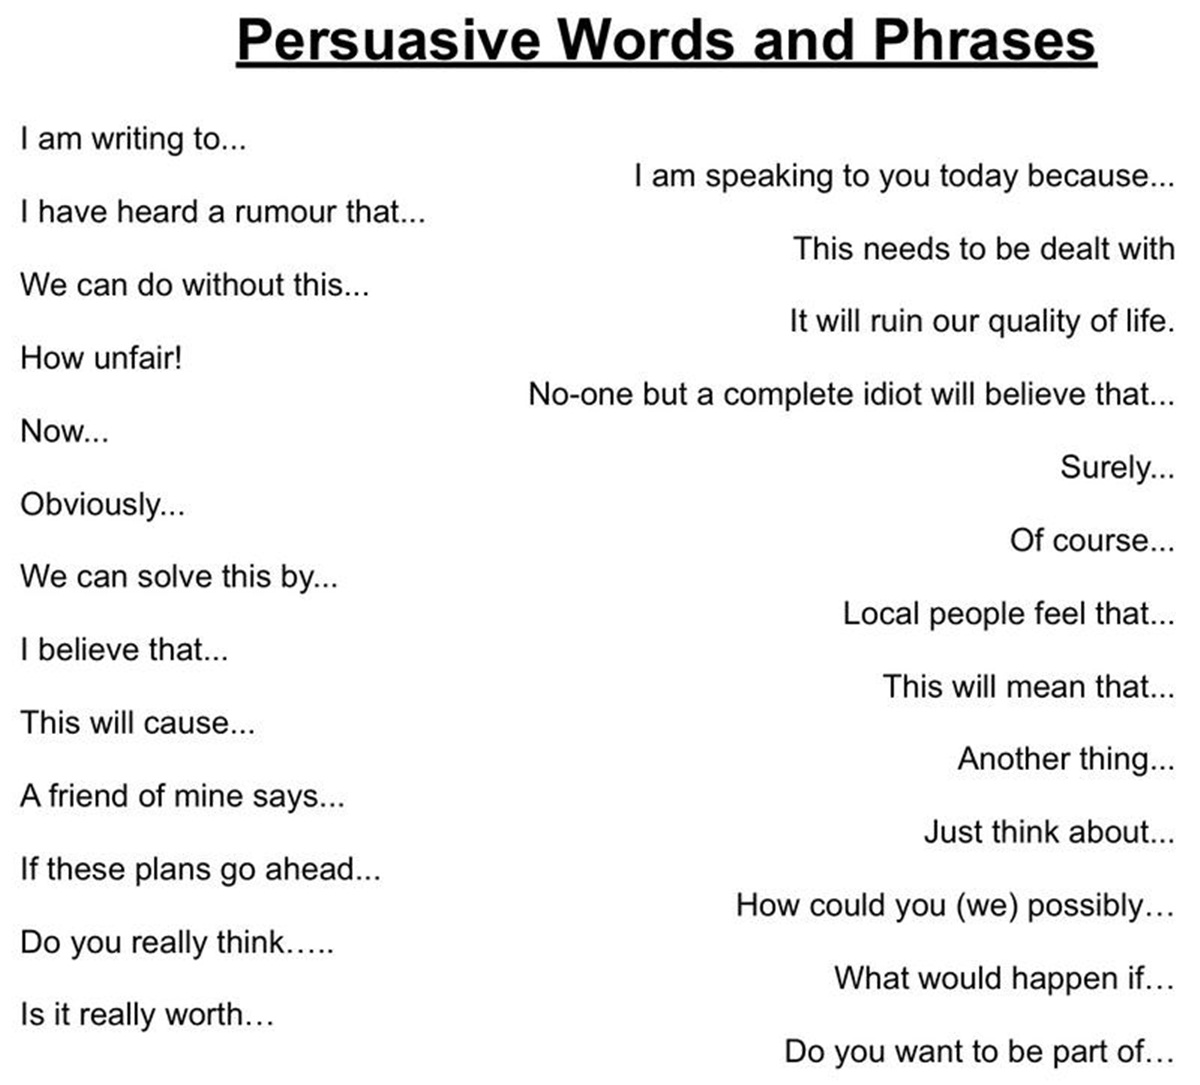 Persuasive Words & Phrases in the English Language 3